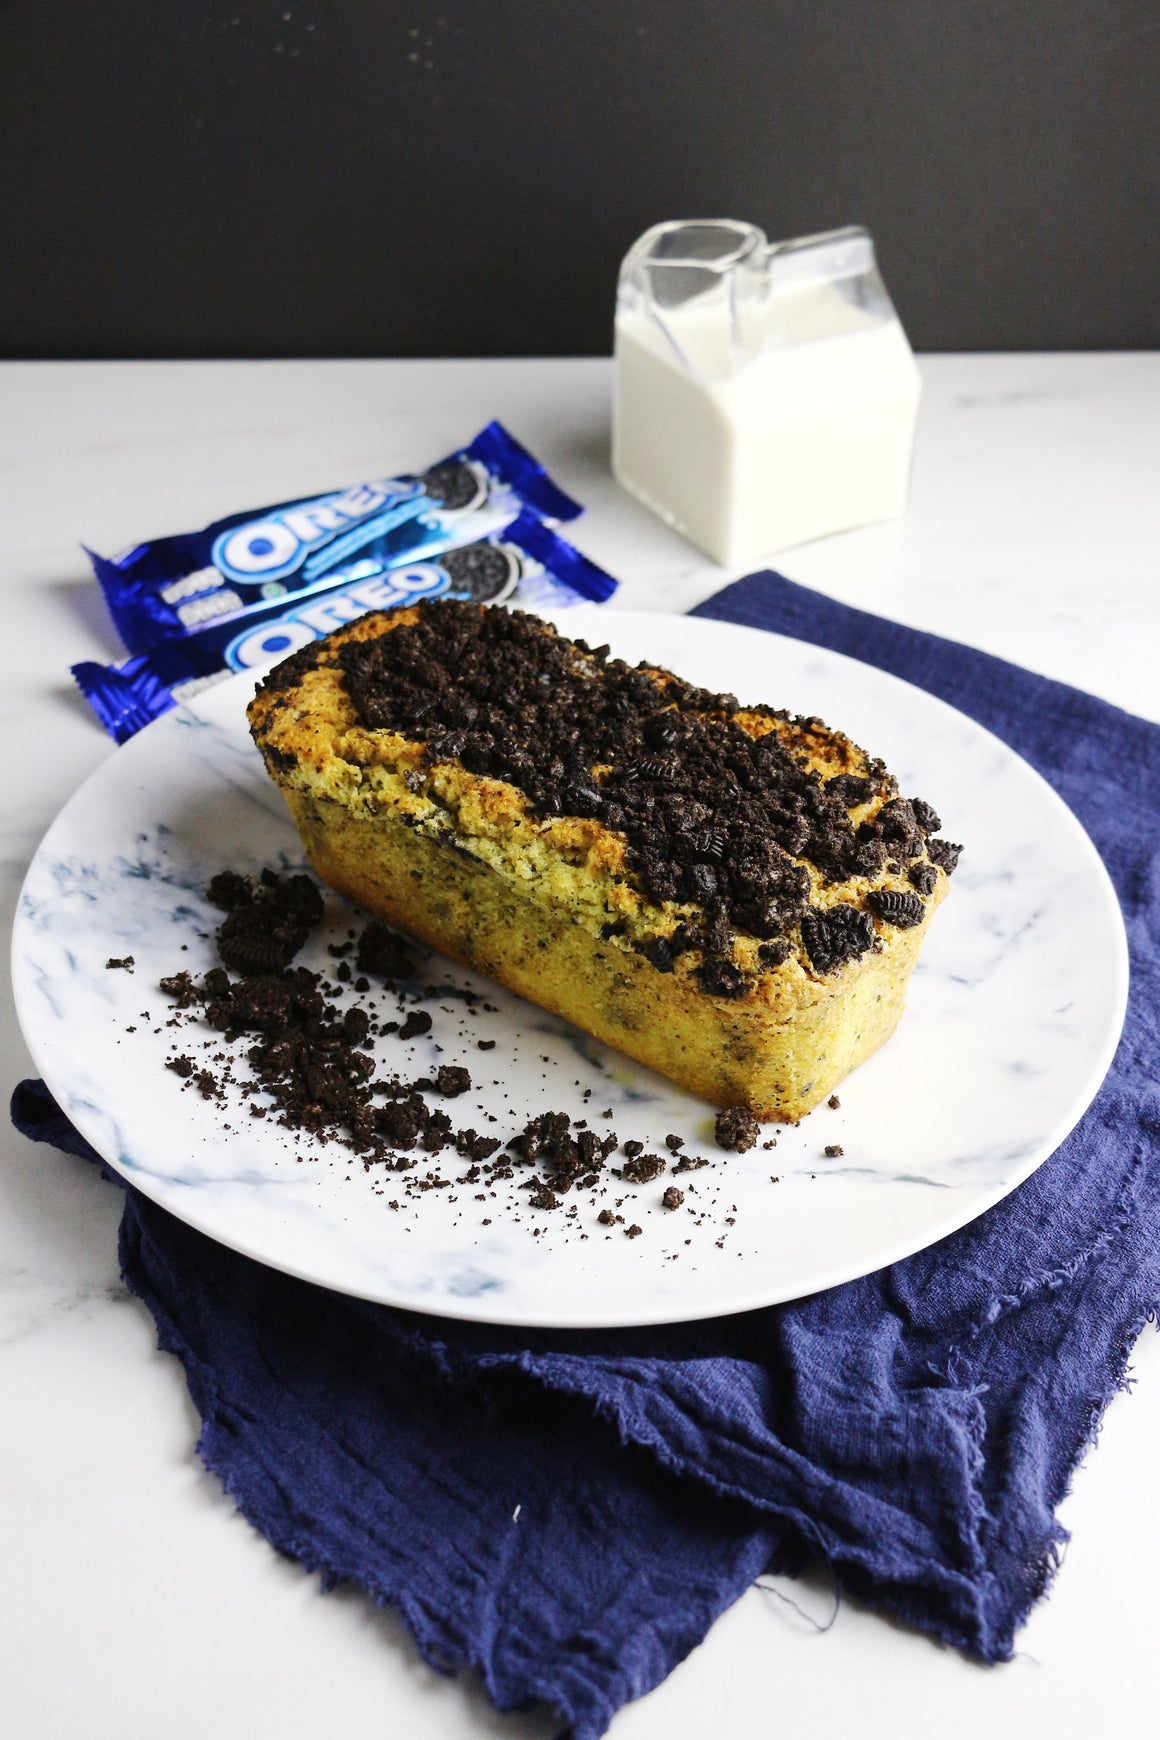 Cookies & Creme Loaf Cakes | Oreo Loaf Cakes w/ Oreo Crunch (makes 2x loaves)